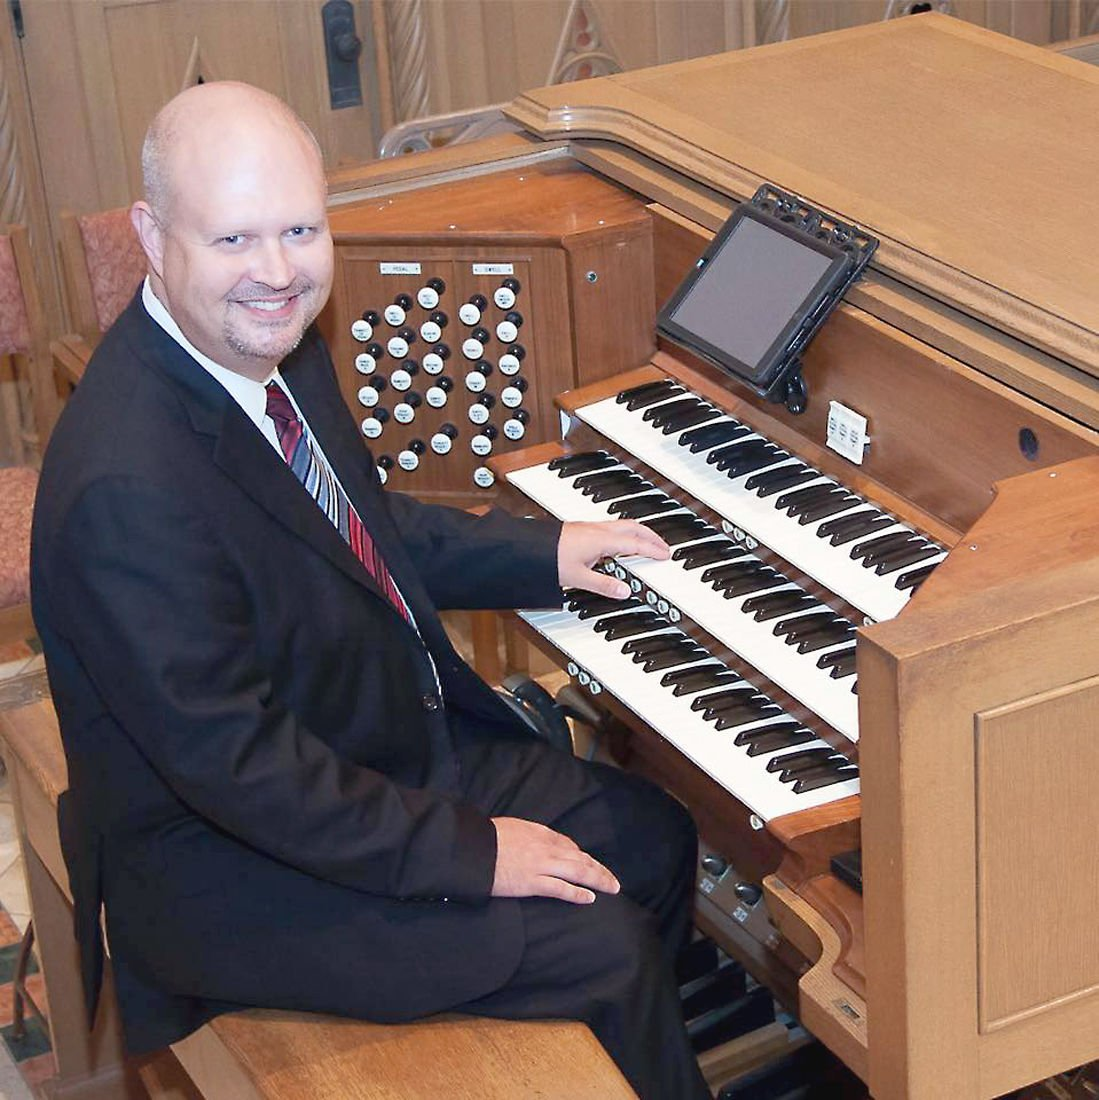 Cathedral organist will perform at Immaculate Conception Parish